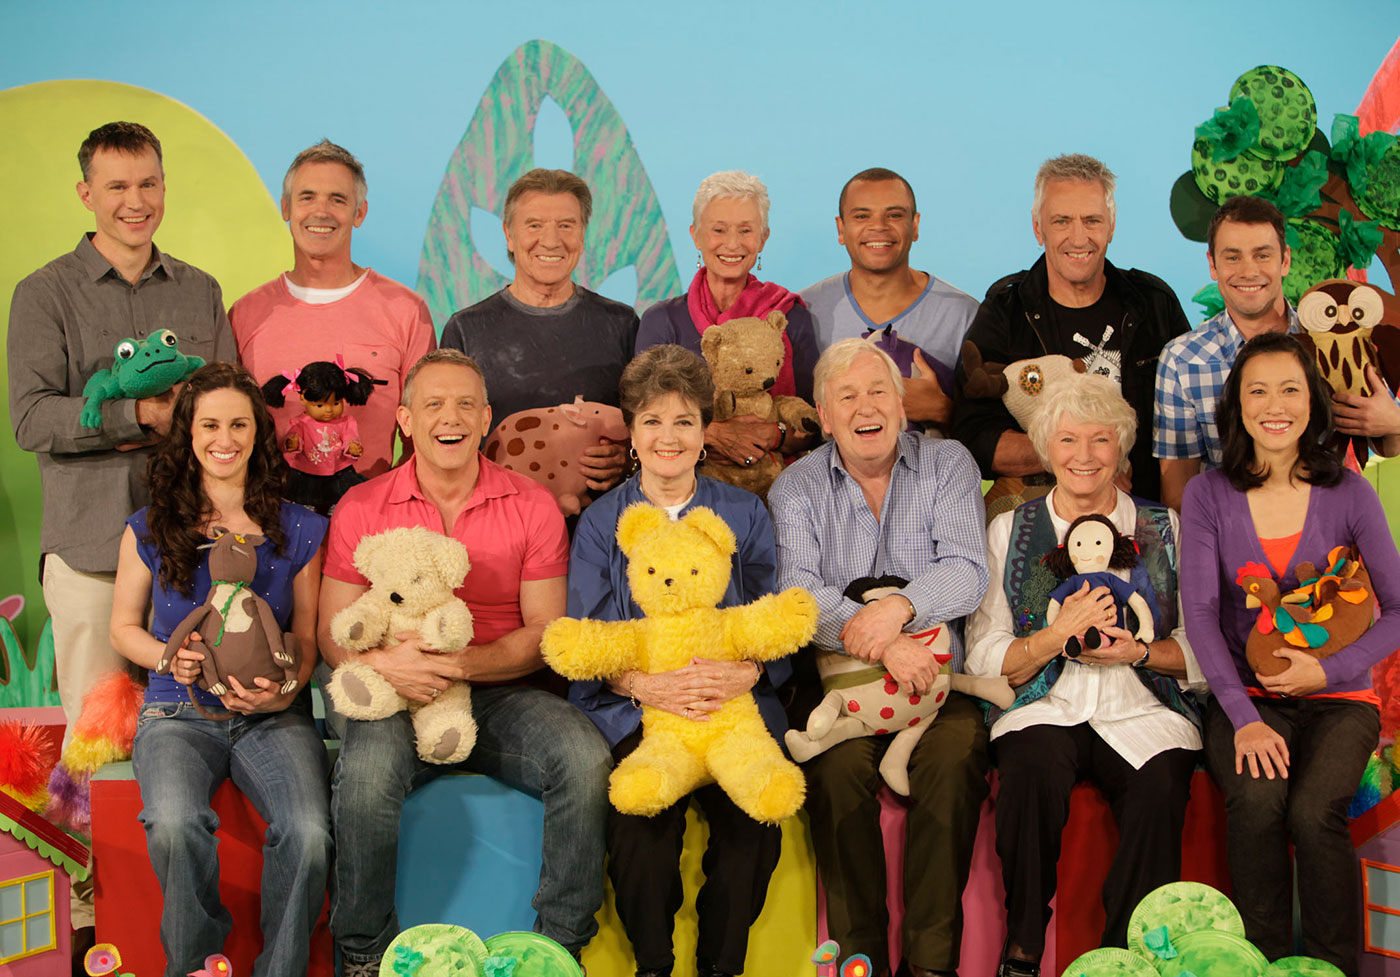 A group shot of Play School presenters and toys on set.